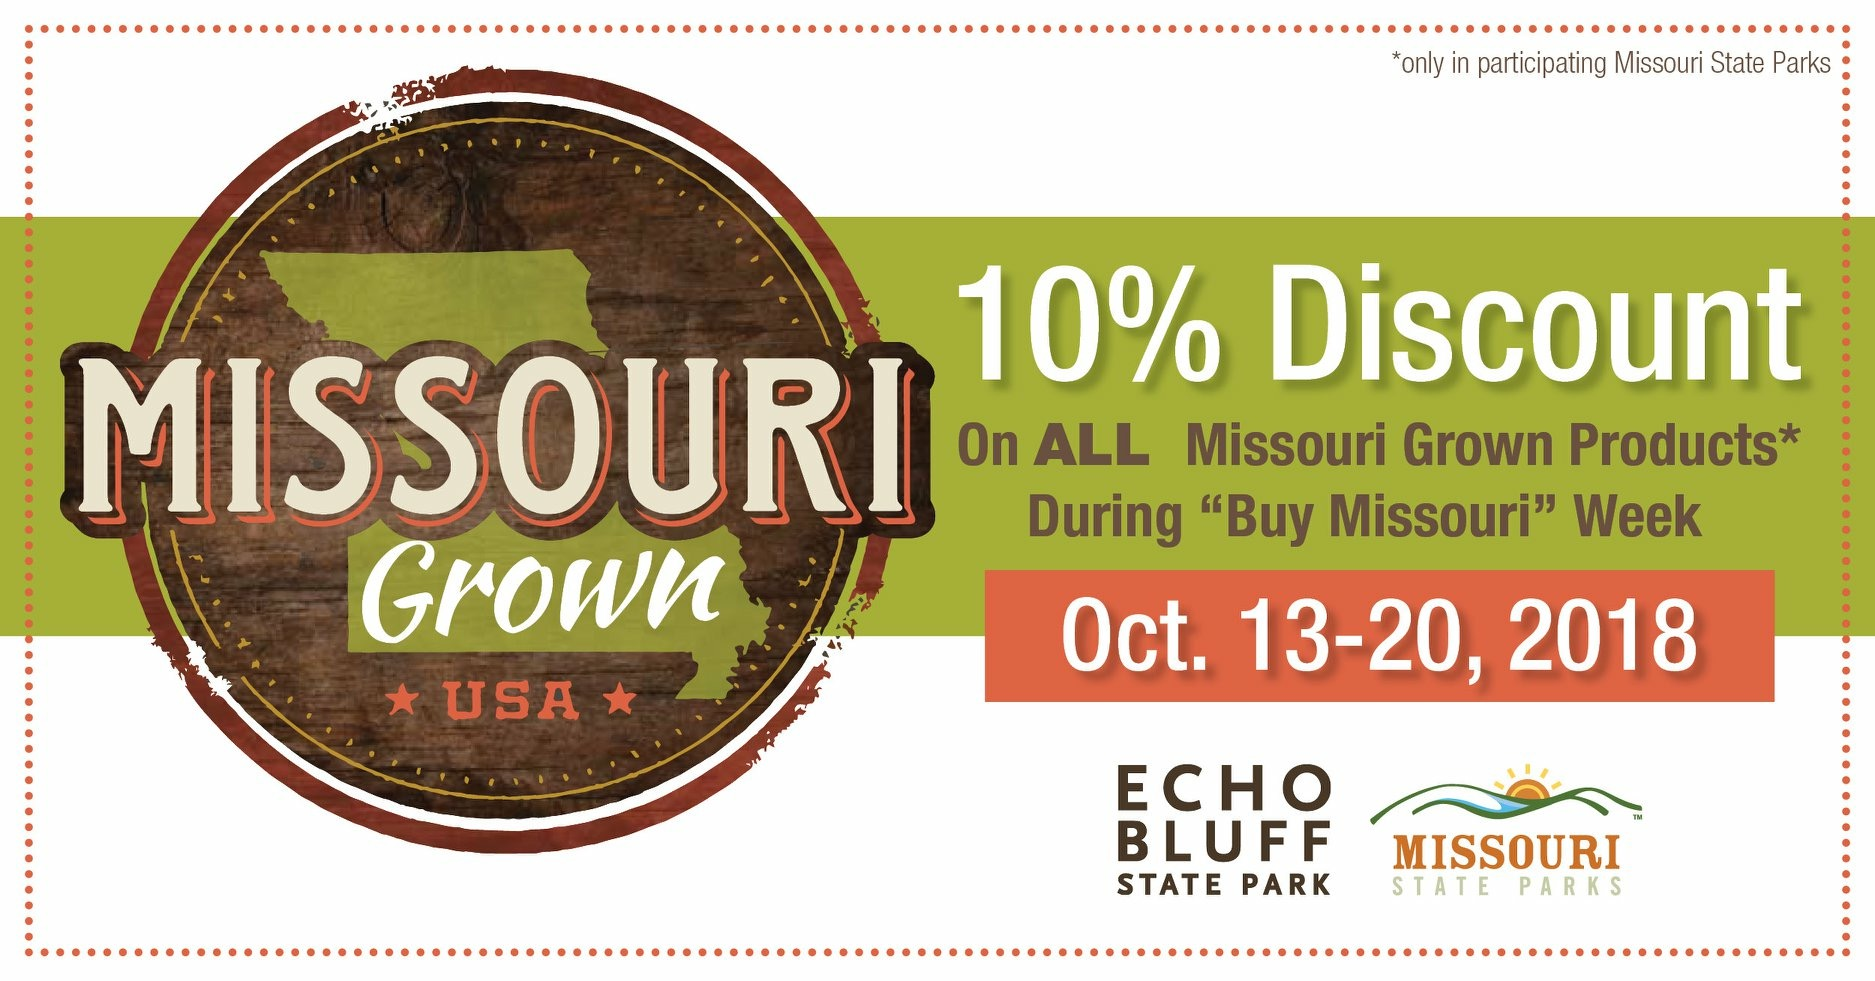 Missouri Grown Products Discount